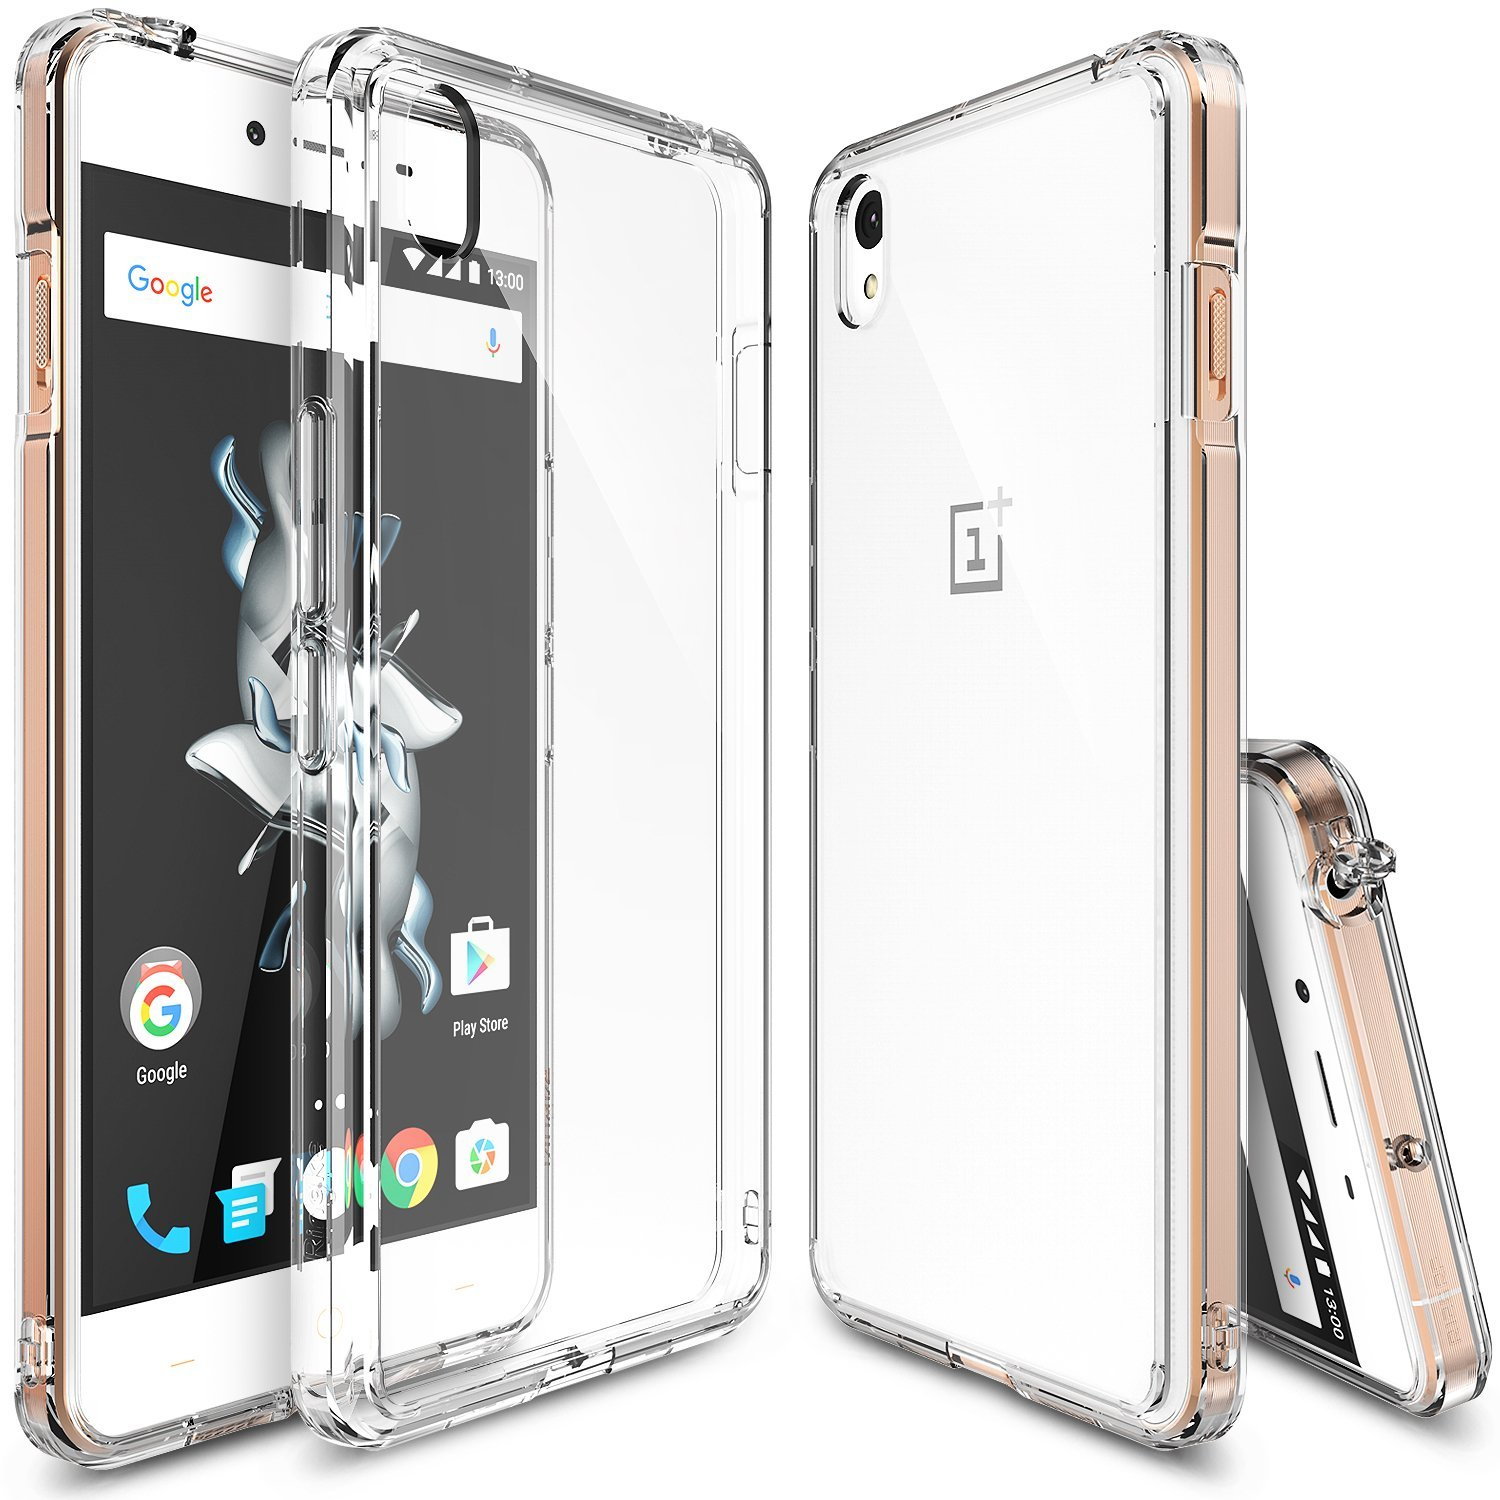 cheap for discount 8f0a5 78df4 Top 10 Best OnePlus X Cases And Covers